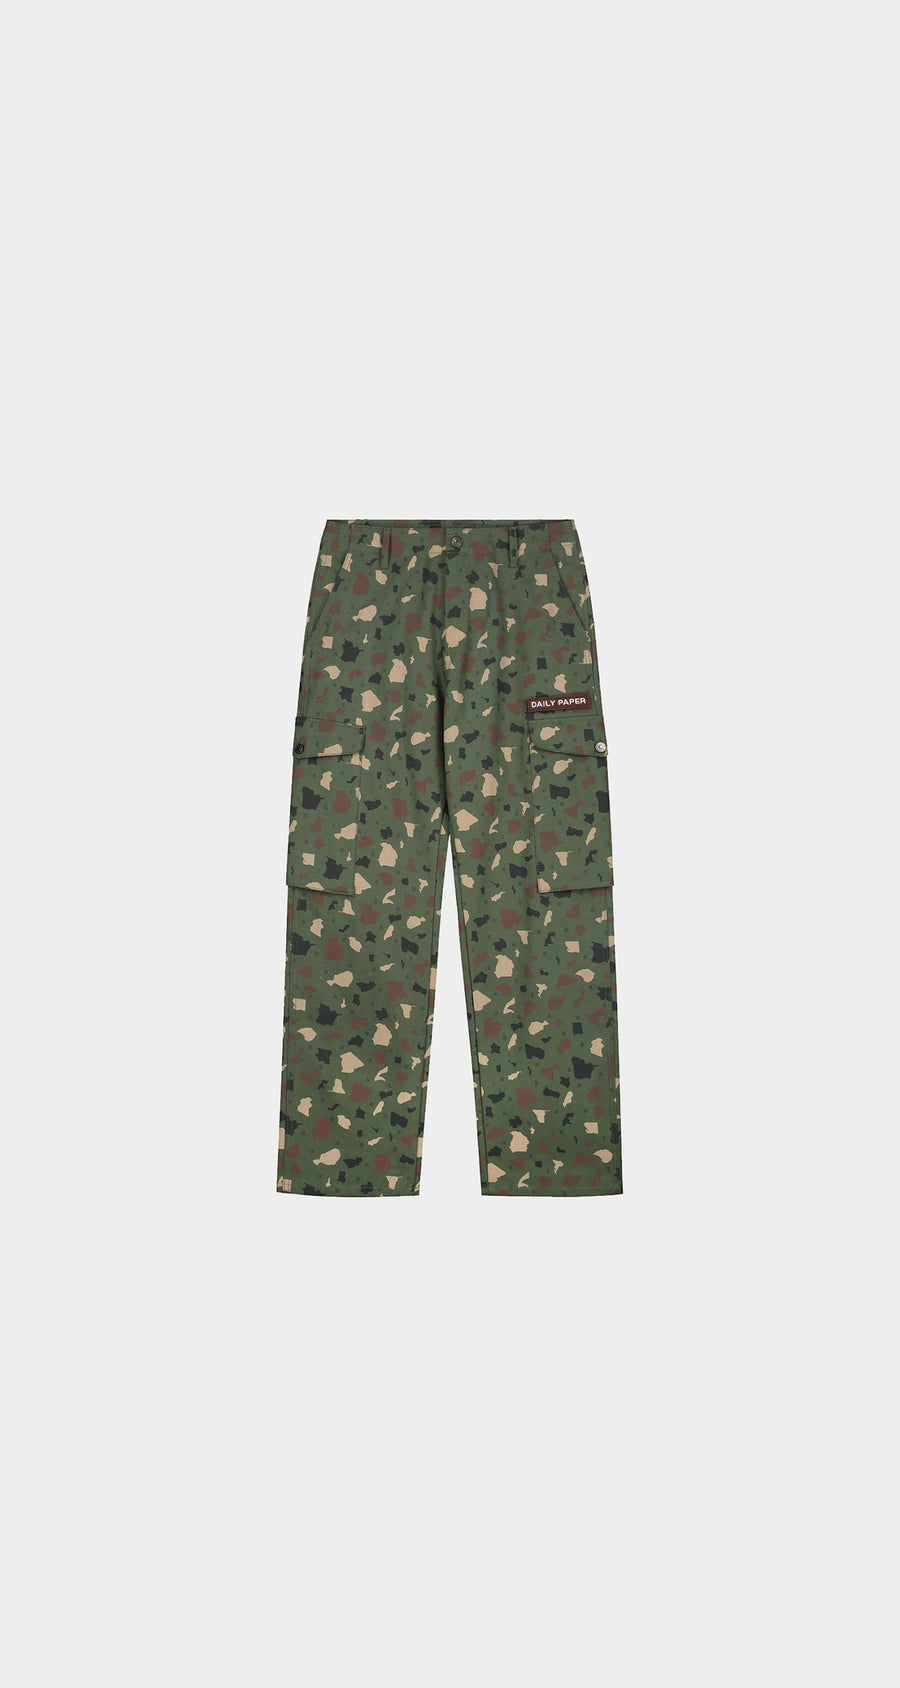 Daily Paper - Green Camo Recomo Cargo Pants - Men Front